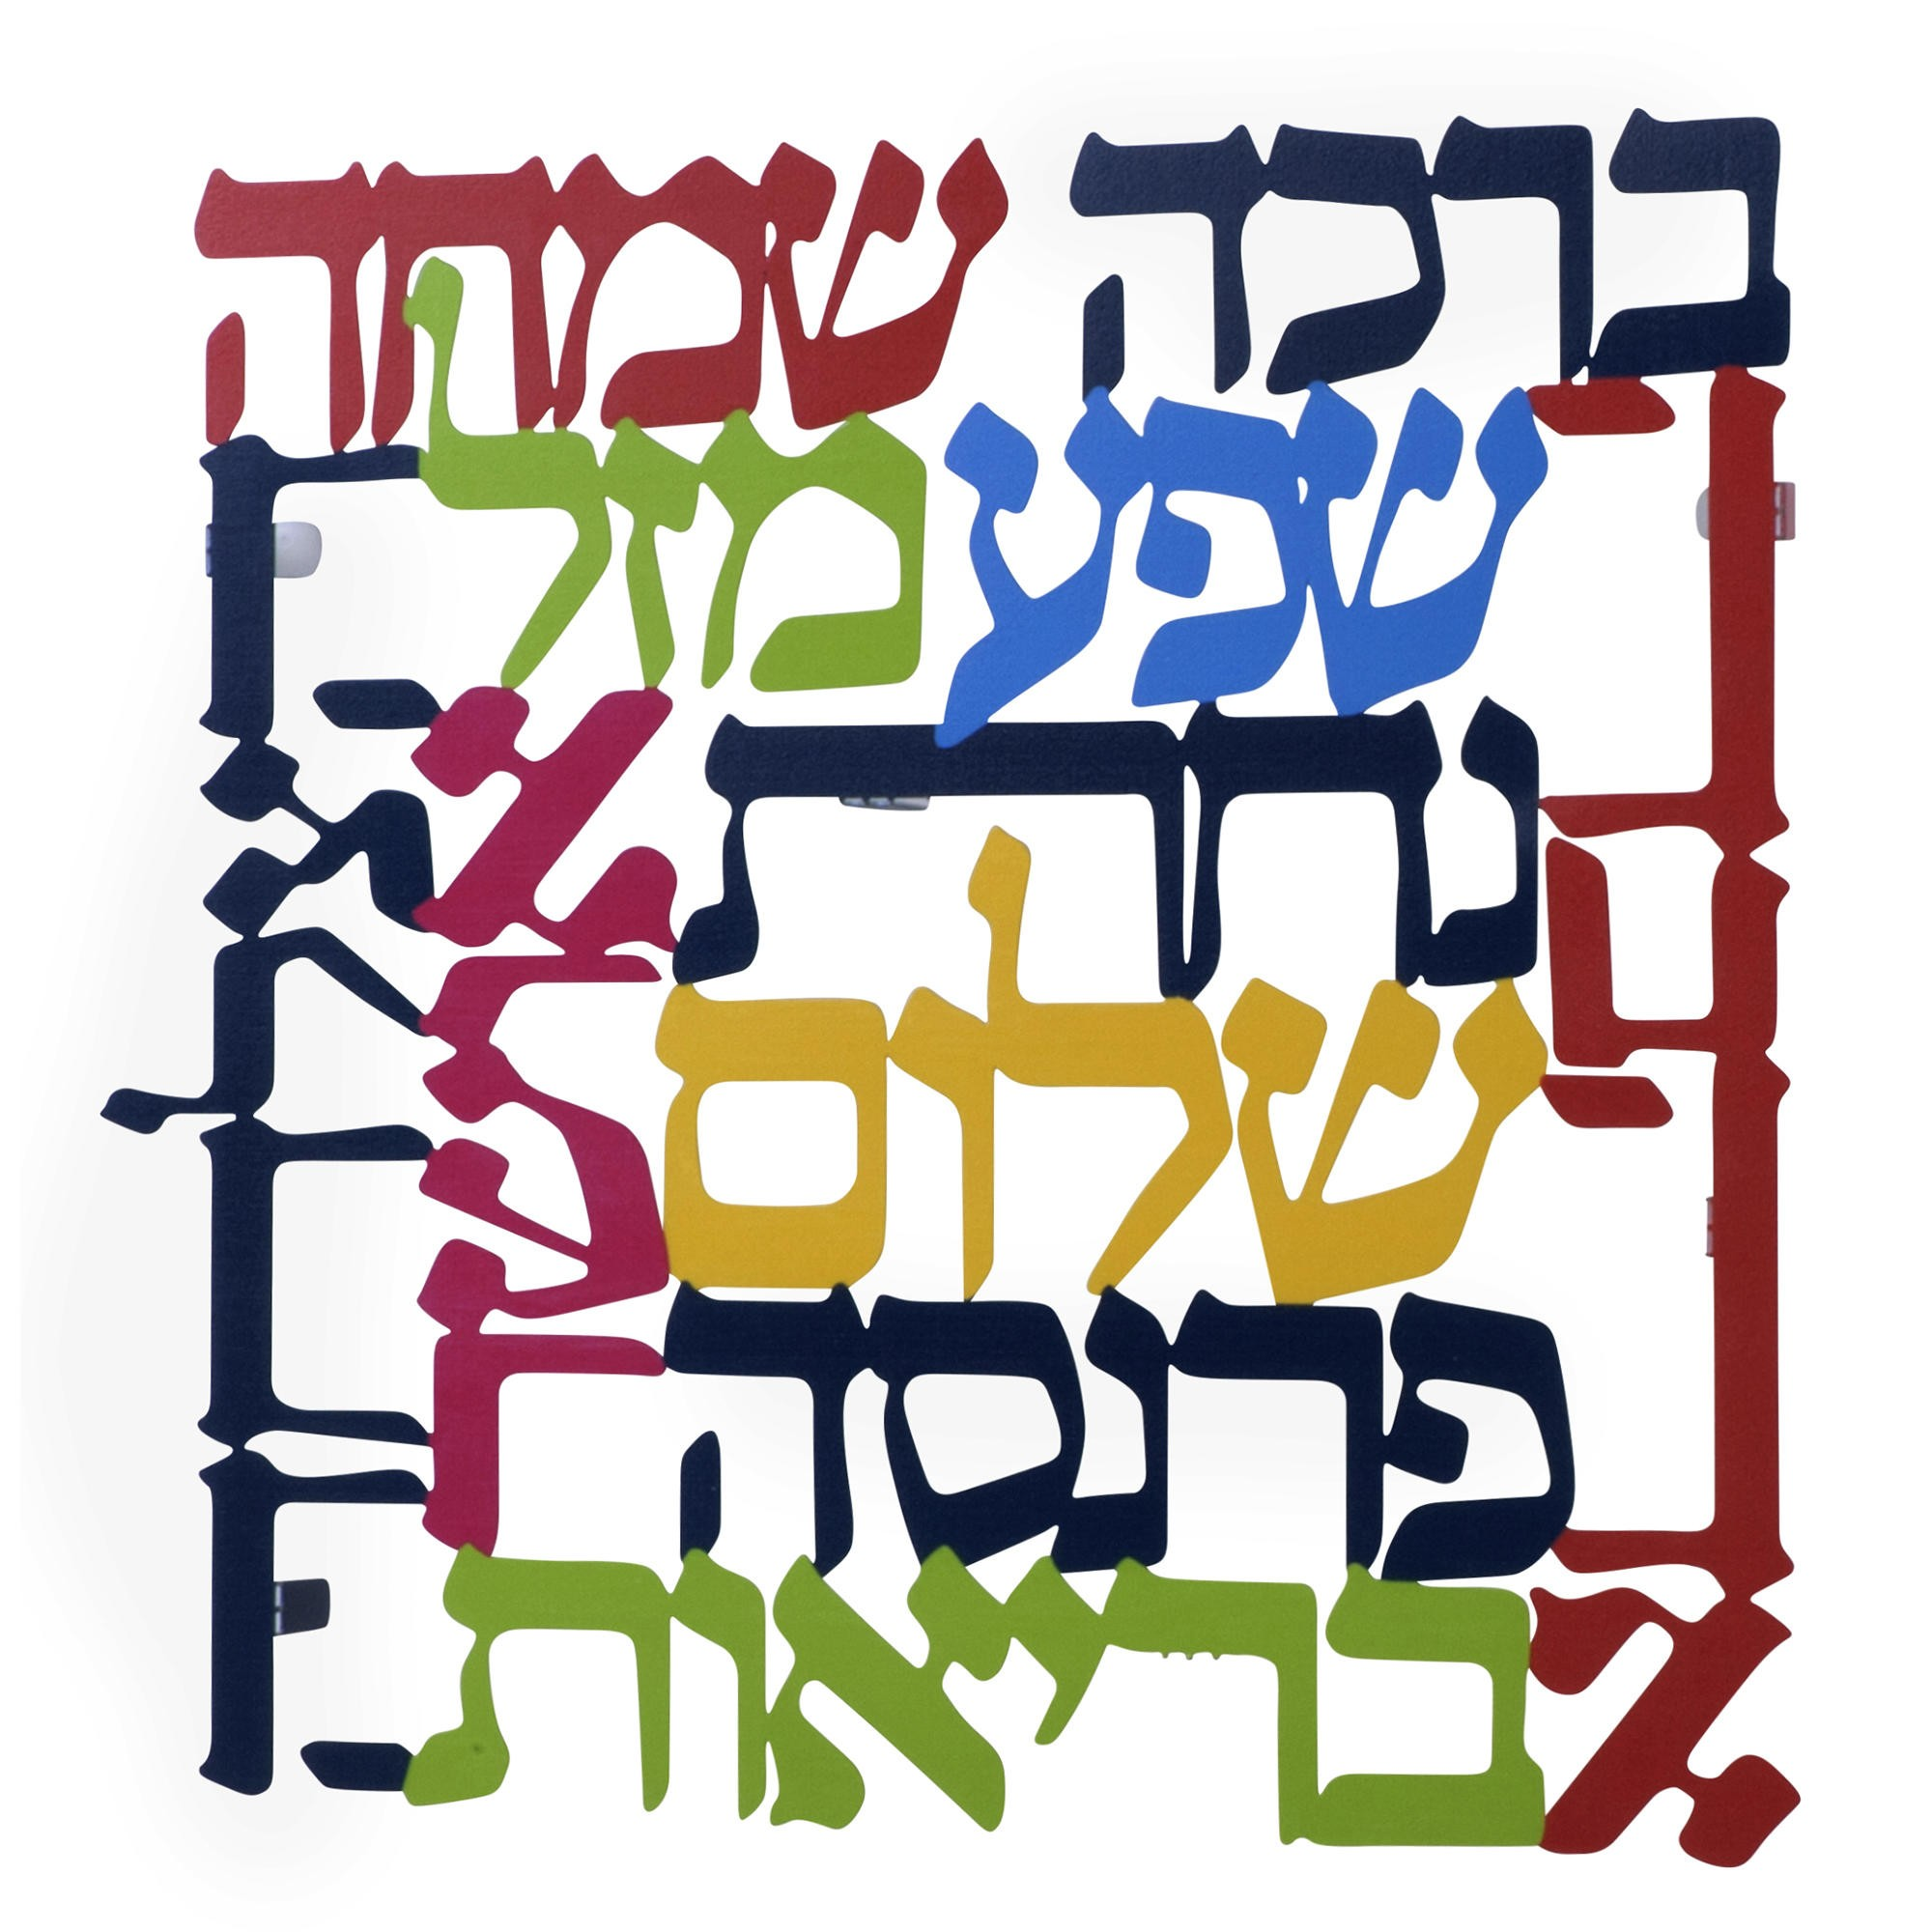 2000x2000 Dorit Judaica Colored Blessings Wall Hanging